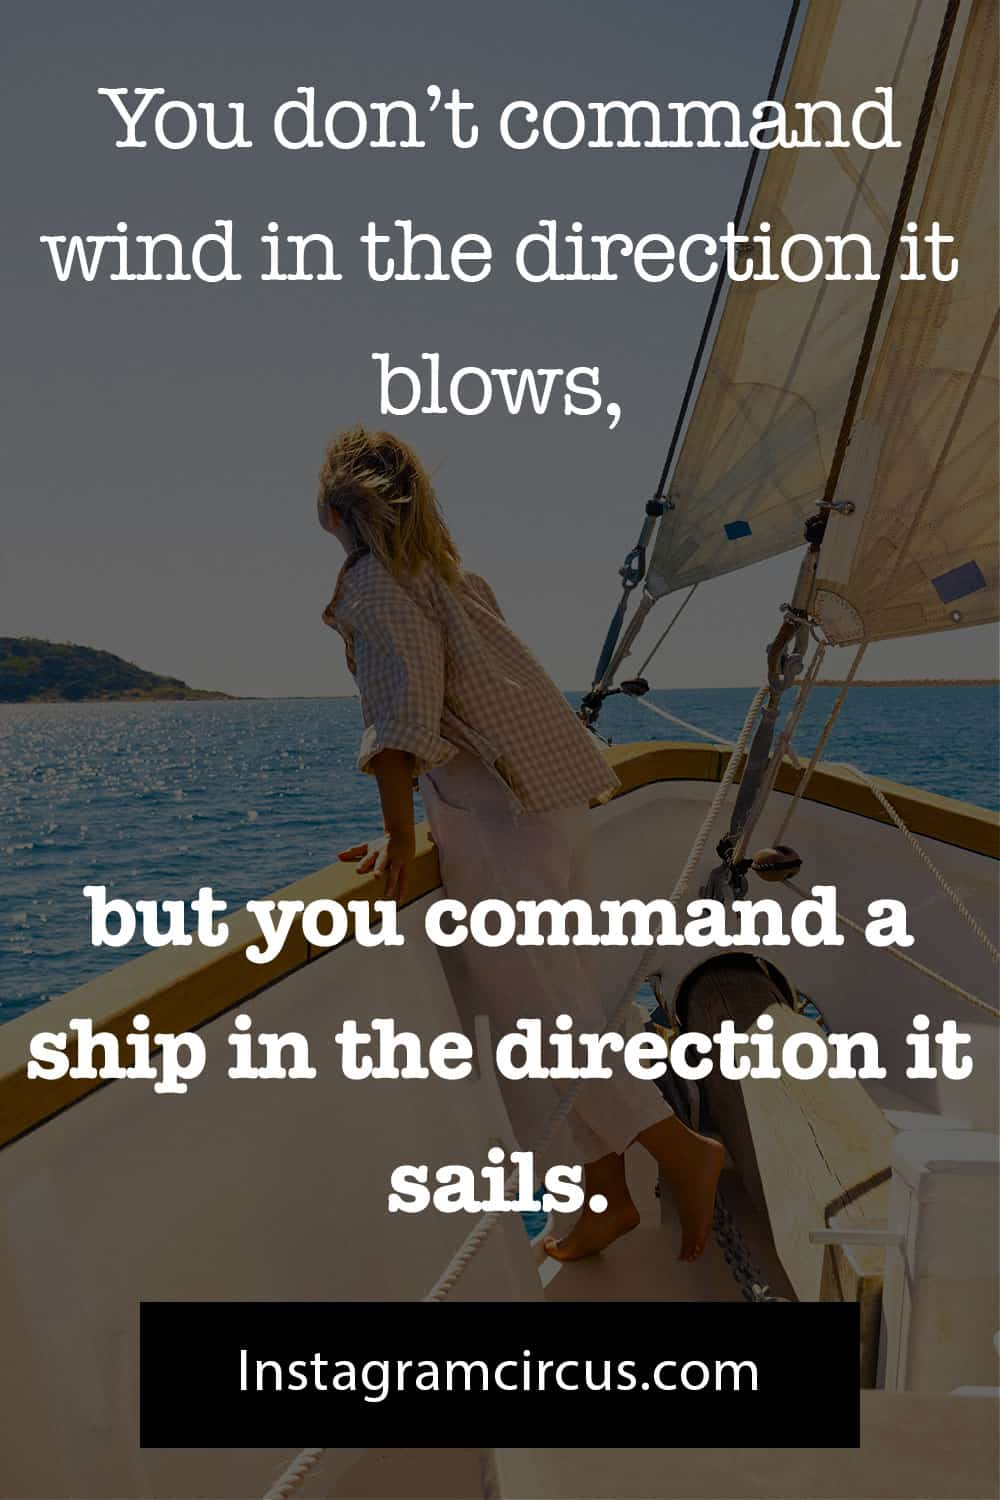 You don't command wind in the direction it blows, but you command a ship in the direction it sails. ―Matshona Dhliwayo